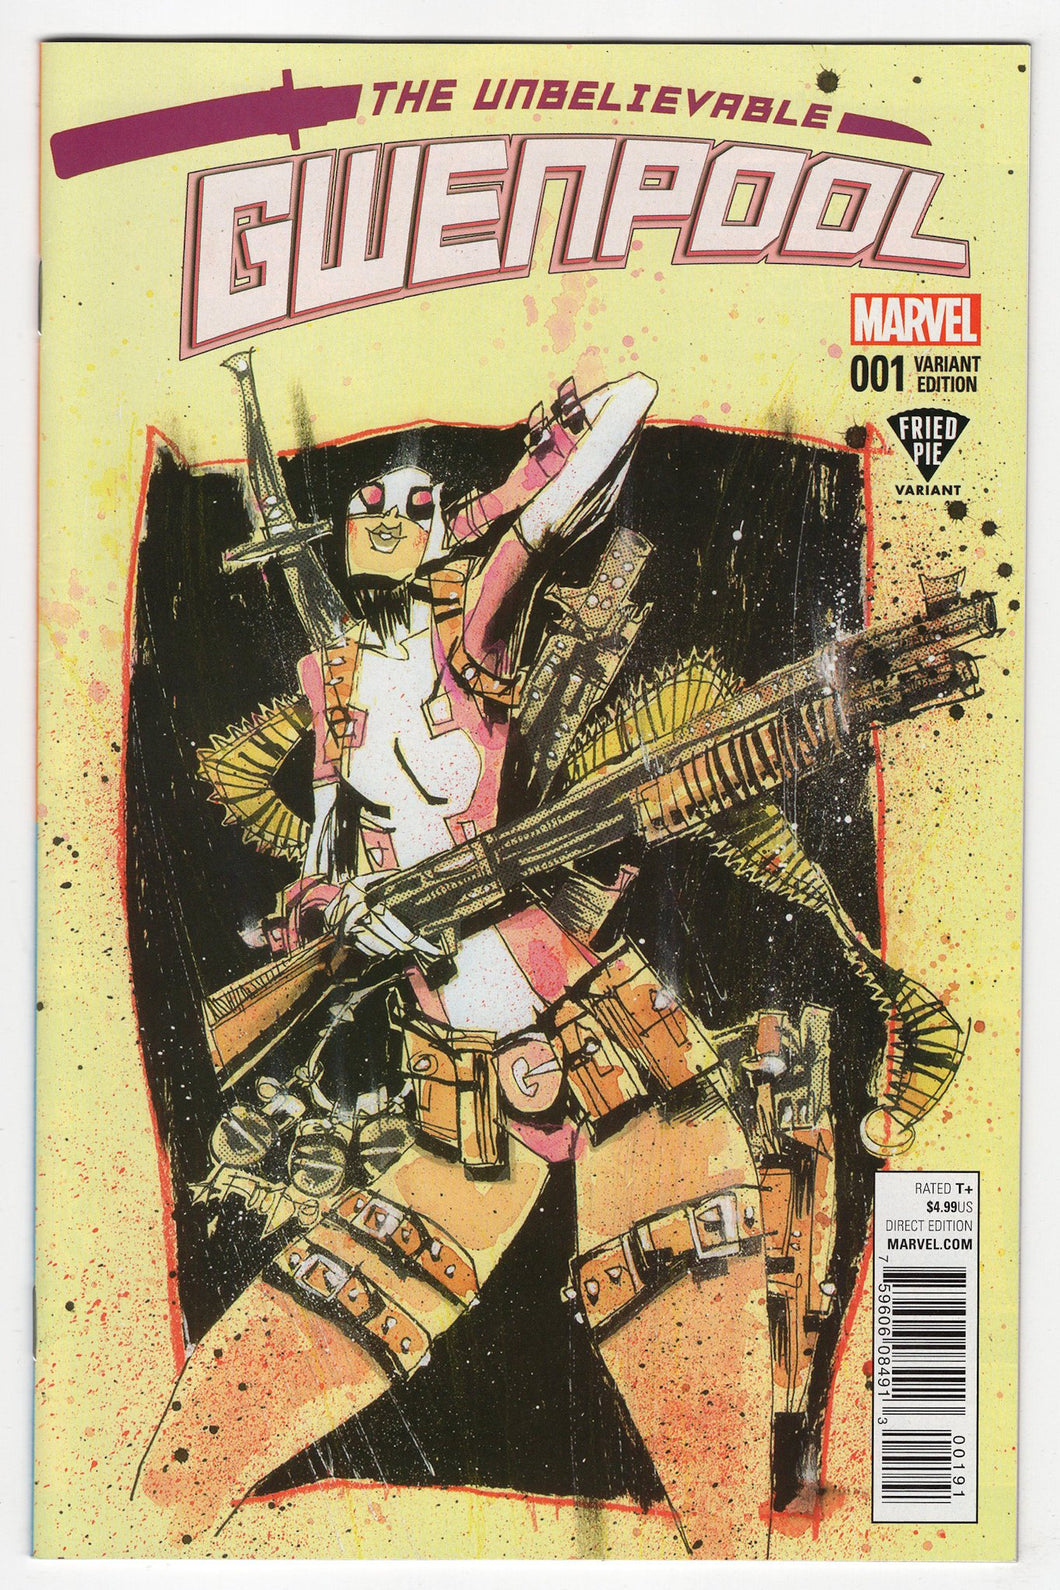 The Unbelievable Gwenpool #1 Variant Cover Front